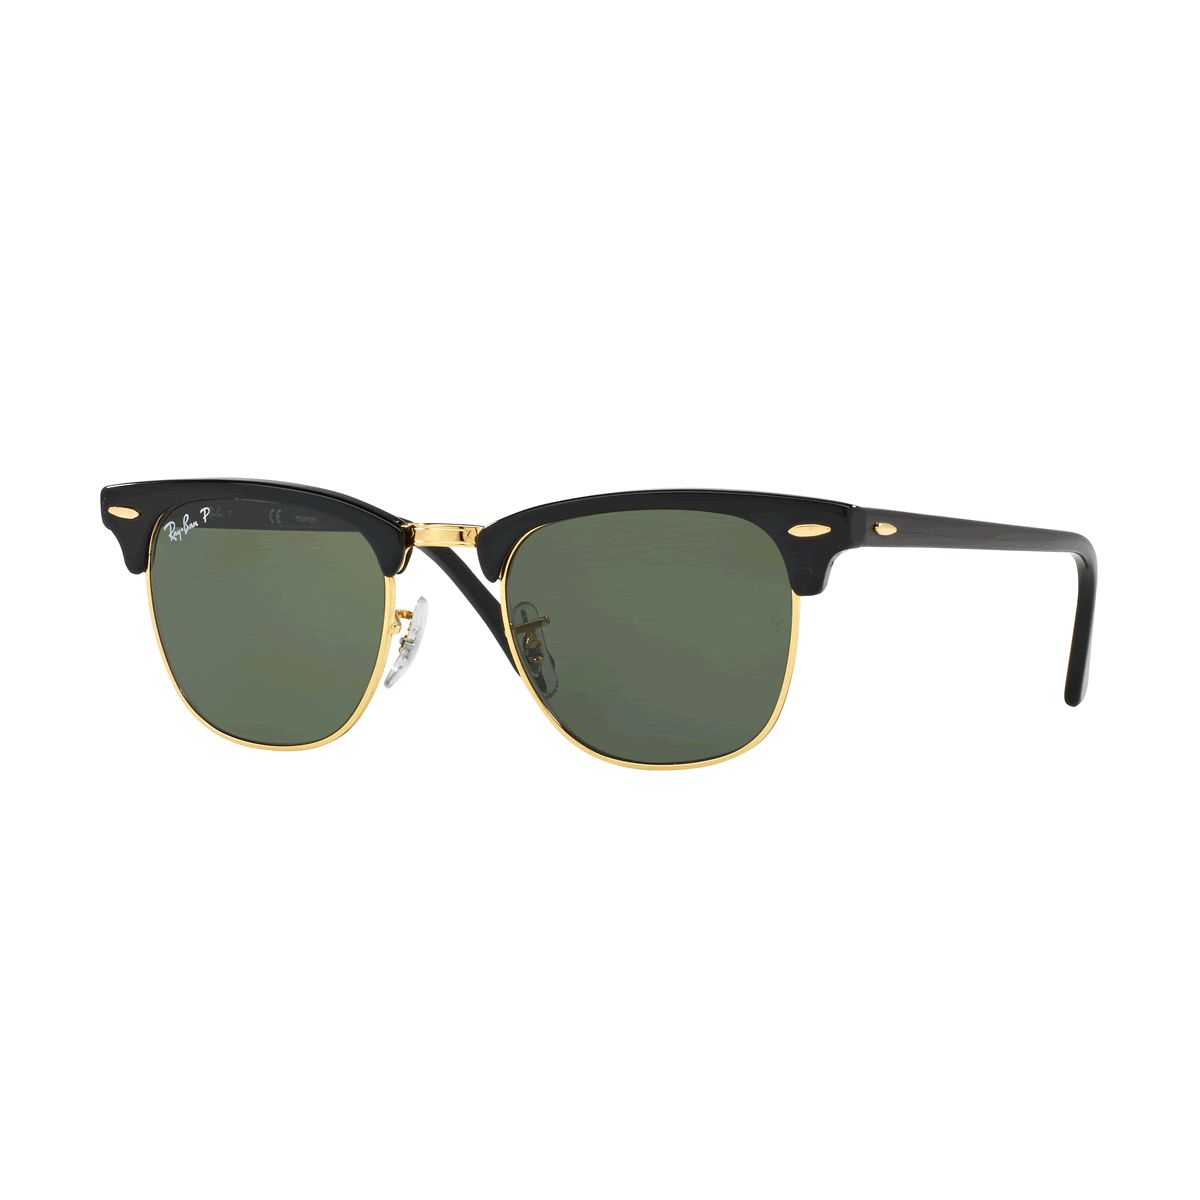 a3adf438d2 Ray-Ban Sunglasses - Mens   Womens Ray-Bans - Macy s